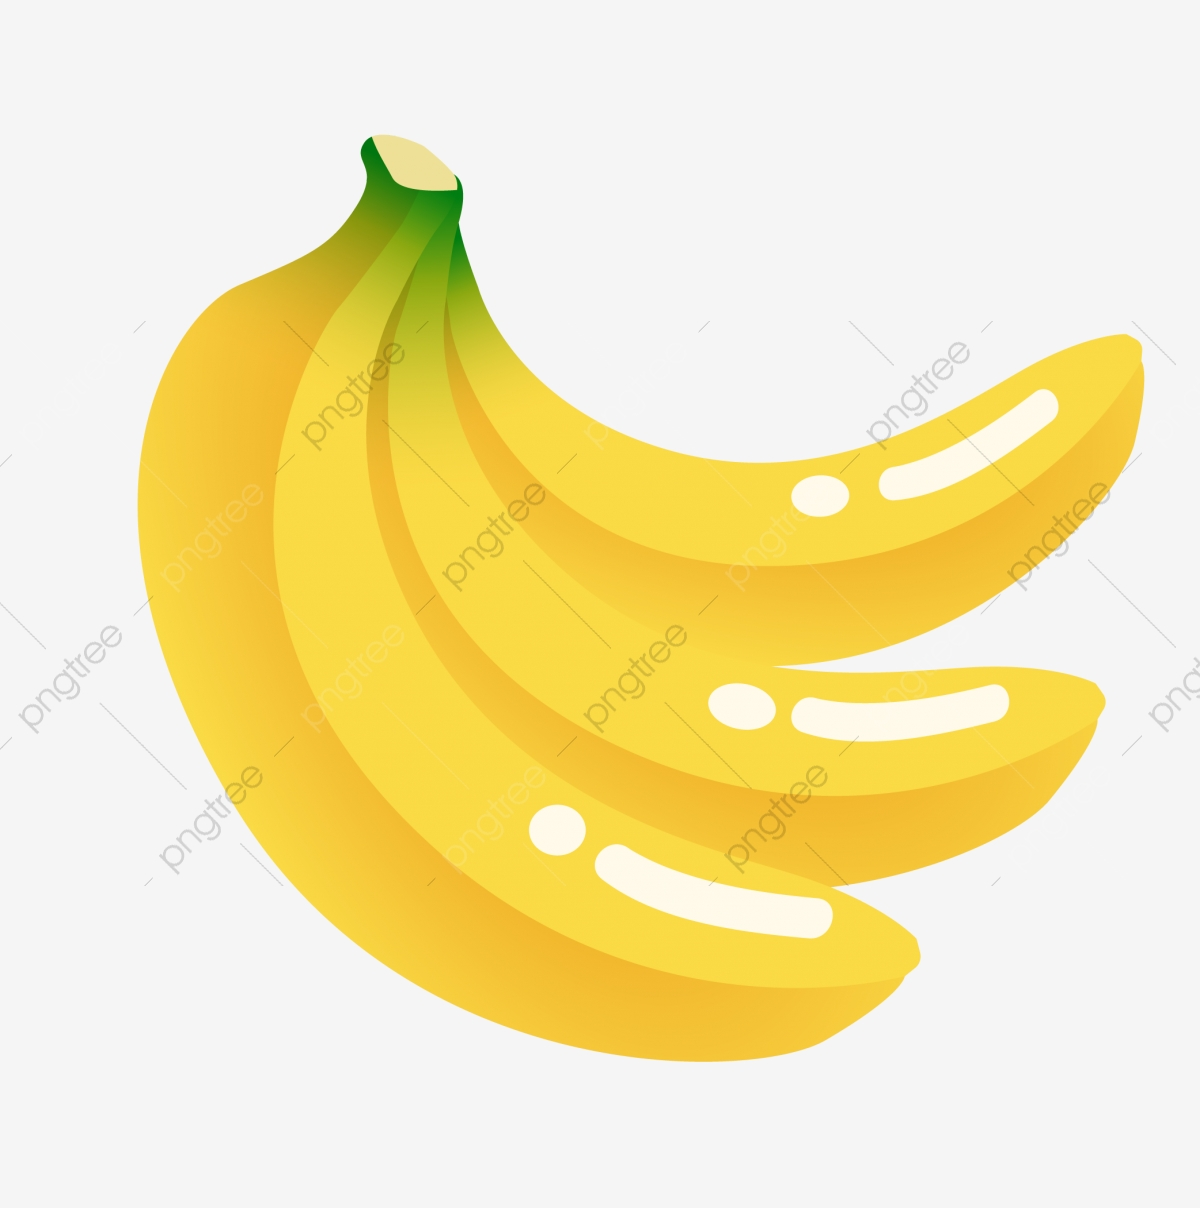 Summer Fruit Cartoon Banana Banana Clipart Summer Cartoon Illustration Png And Vector With Transparent Background For Free Download Youtube.com/channel/ucarwu… banana cartoon начал(а) читать. https pngtree com freepng summer fruit cartoon banana 3979229 html